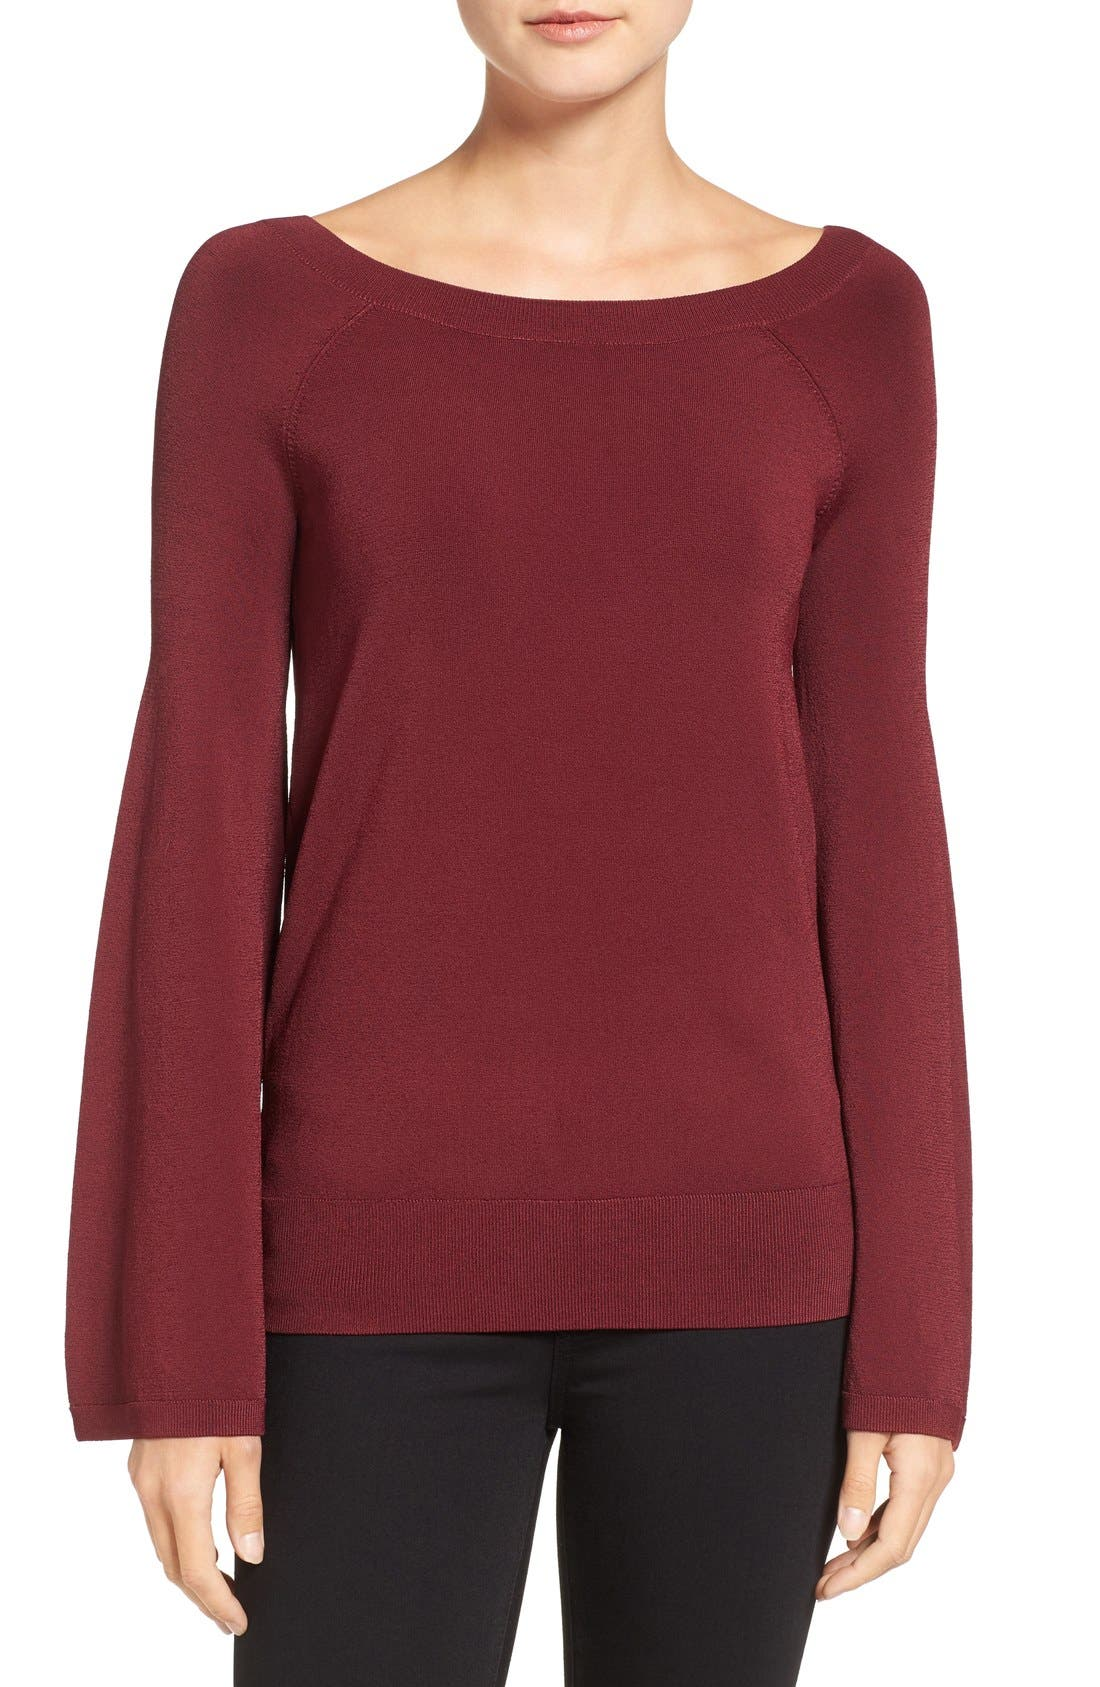 Alternate Image 1 Selected - Chelsea28 Flare Sleeve Sweater